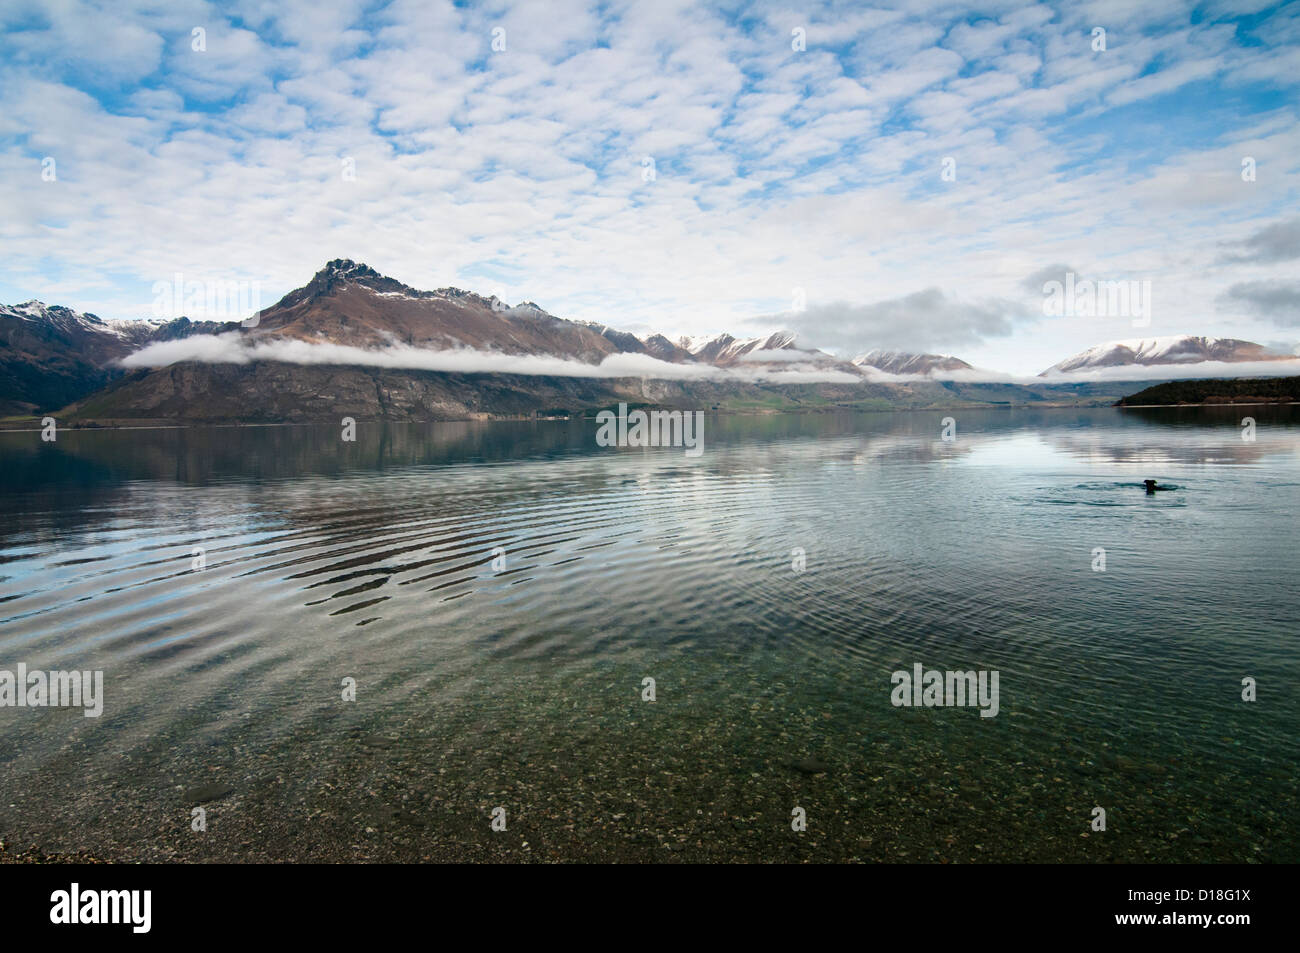 Clouds reflected in rippling lake - Stock Image